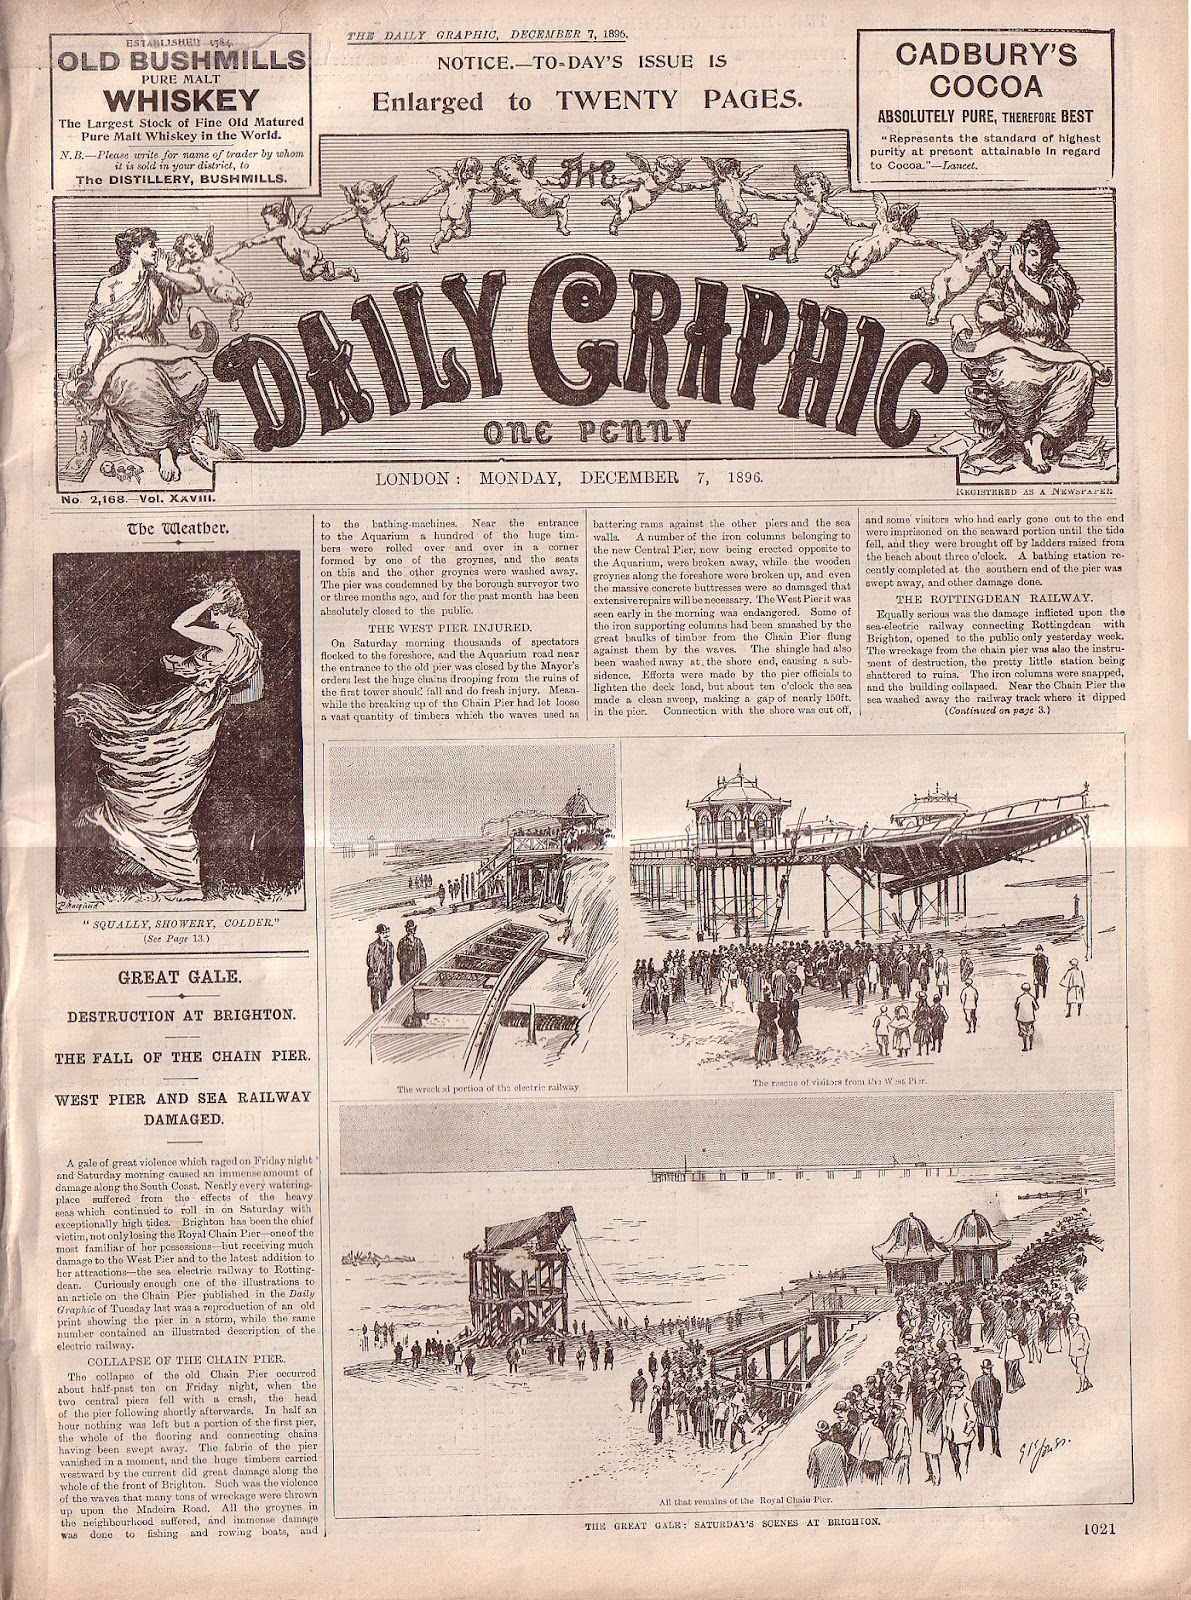 Yesterday's Papers: The Daily Graphic illustrated weekly